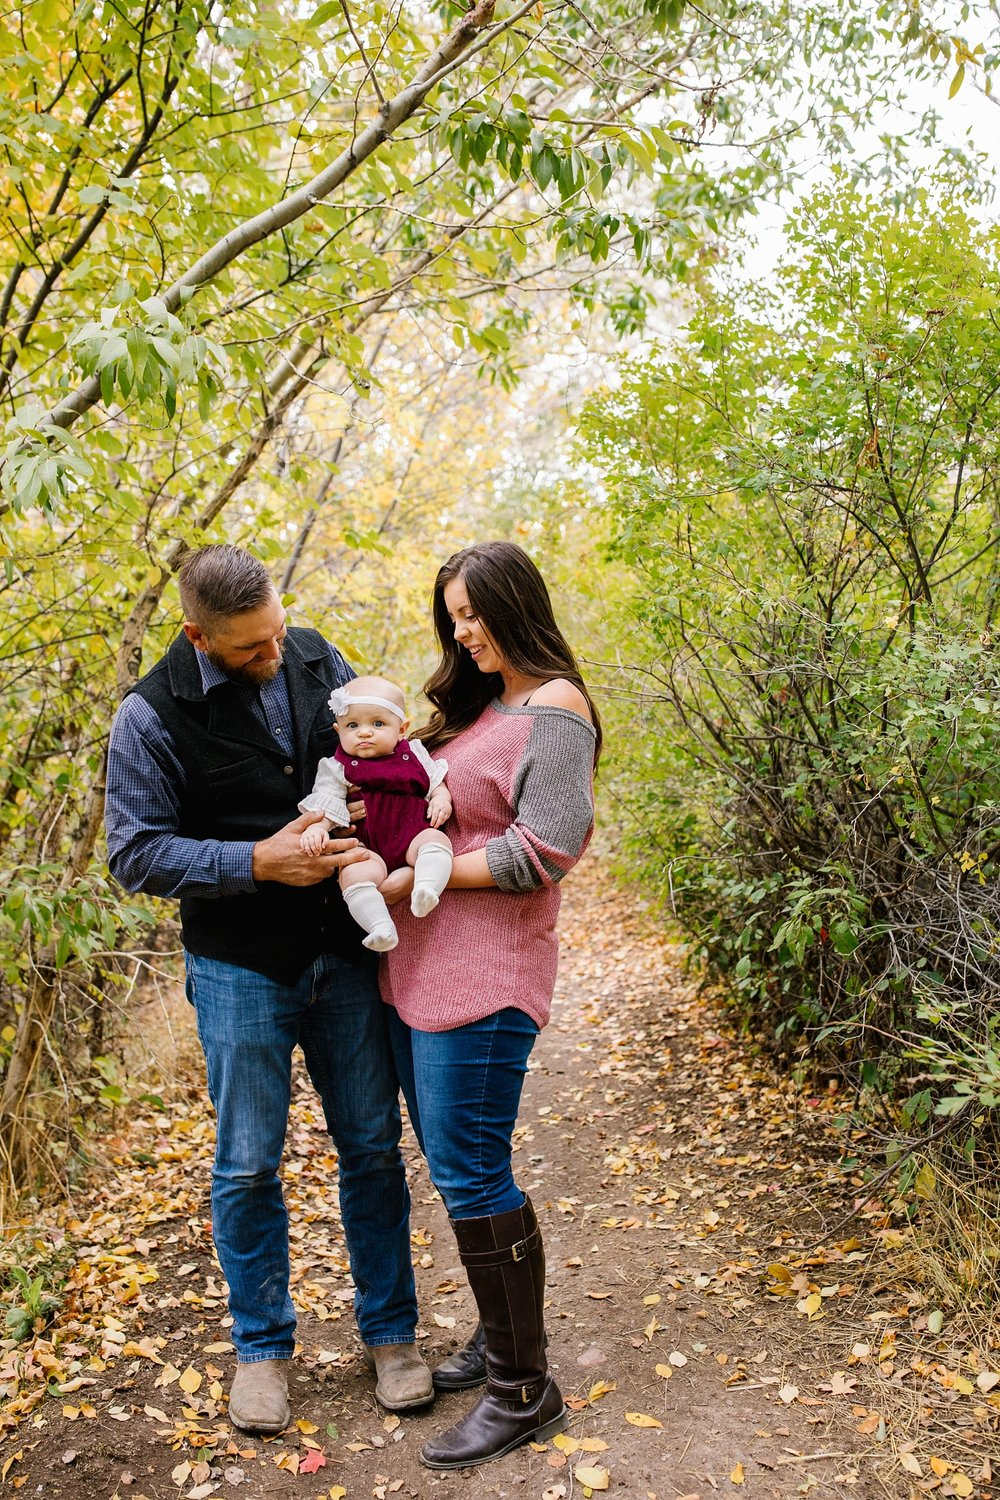 Matthews-20_Lizzie-B-Imagery-Utah-Family-Photographer-Park-City-Salt-Lake-City-Nephi-Utah.jpg